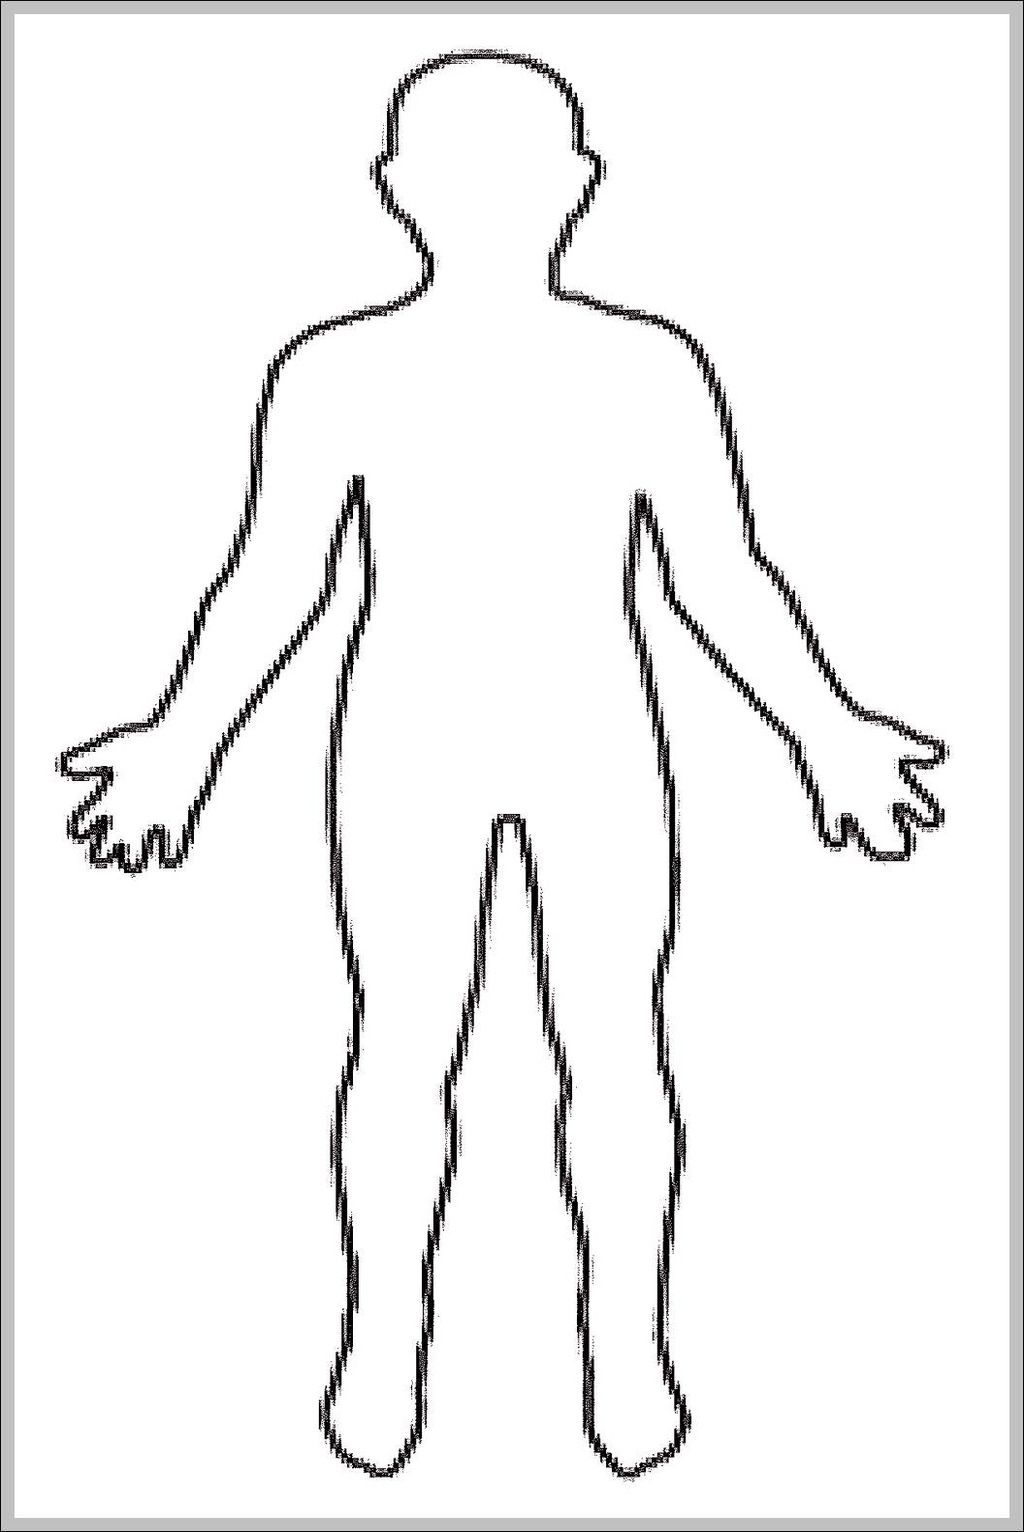 Human Body Unlabeled Diagram - Human Body Anatomy Human Body Anatomy